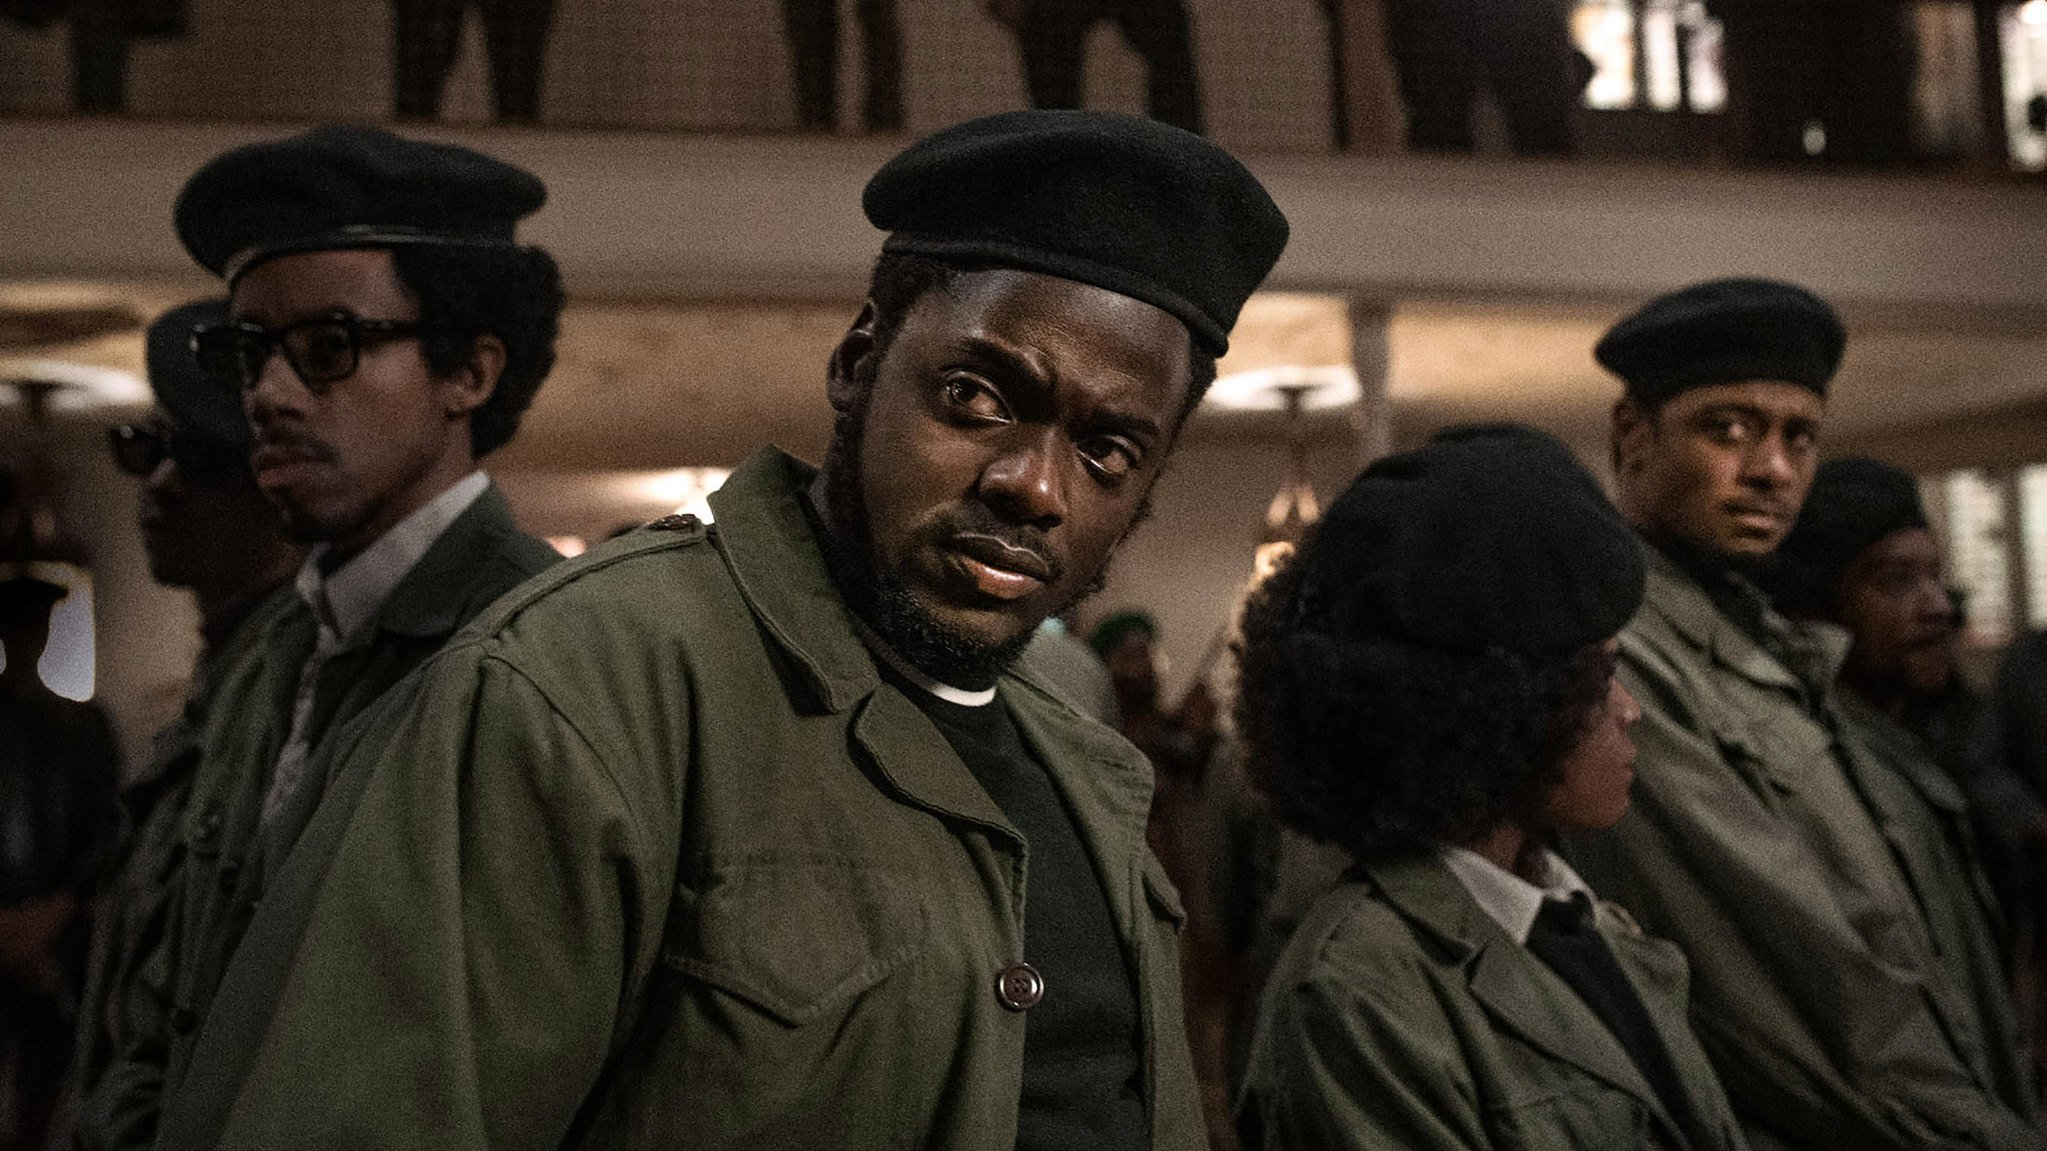 Darrel Britt-Gibson, Daniel Kaluuya and Lakeith Stanfield appear in Judas and the Black Messiah by Shaka King, an official selection of the Premieres section at the 2021 Sundance Film Festival. Courtesy of Sundance Institute | photo by Glen Wilson.